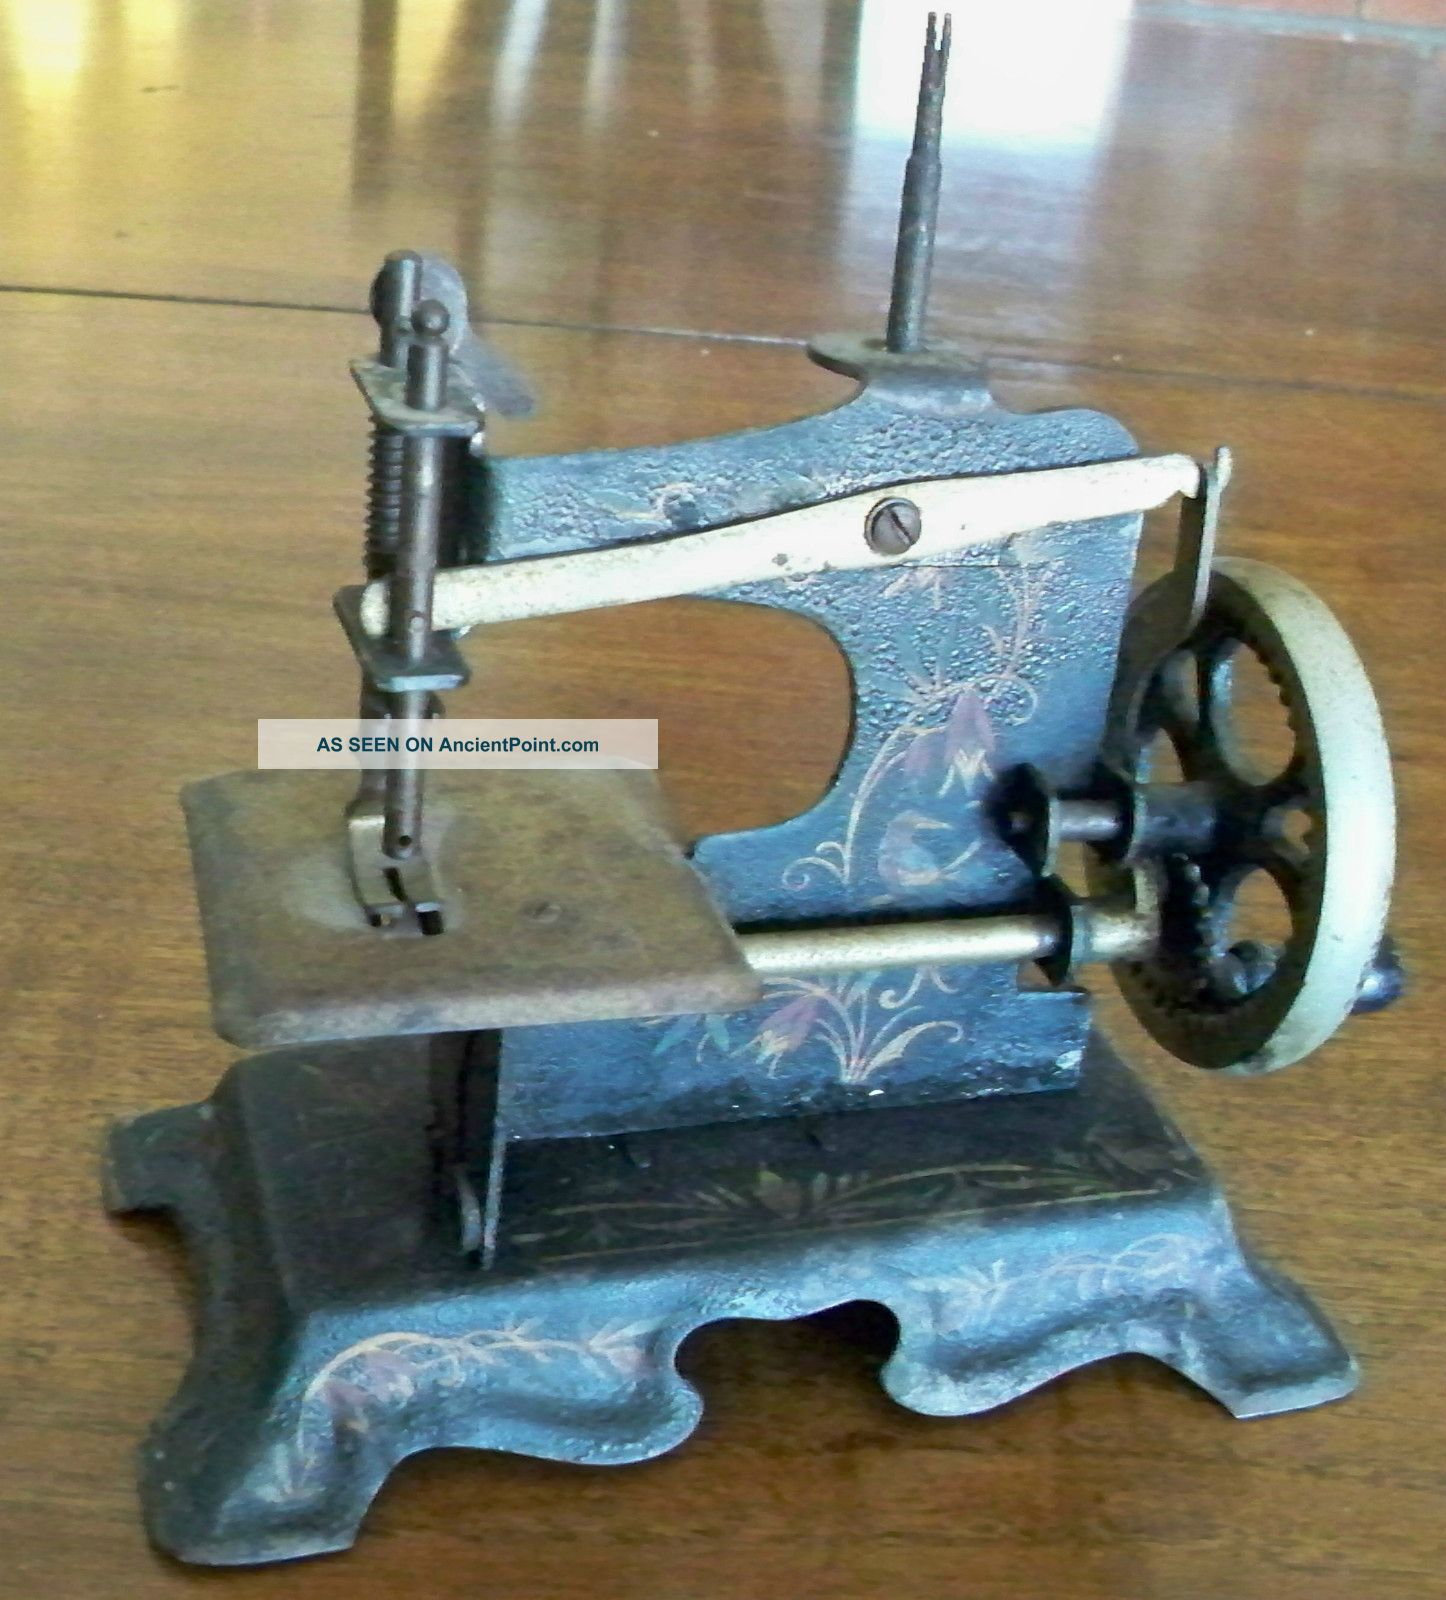 Antique 1800s? Small Metal Working Primitive Sewing Machine No.  478305 Sewing Machines photo